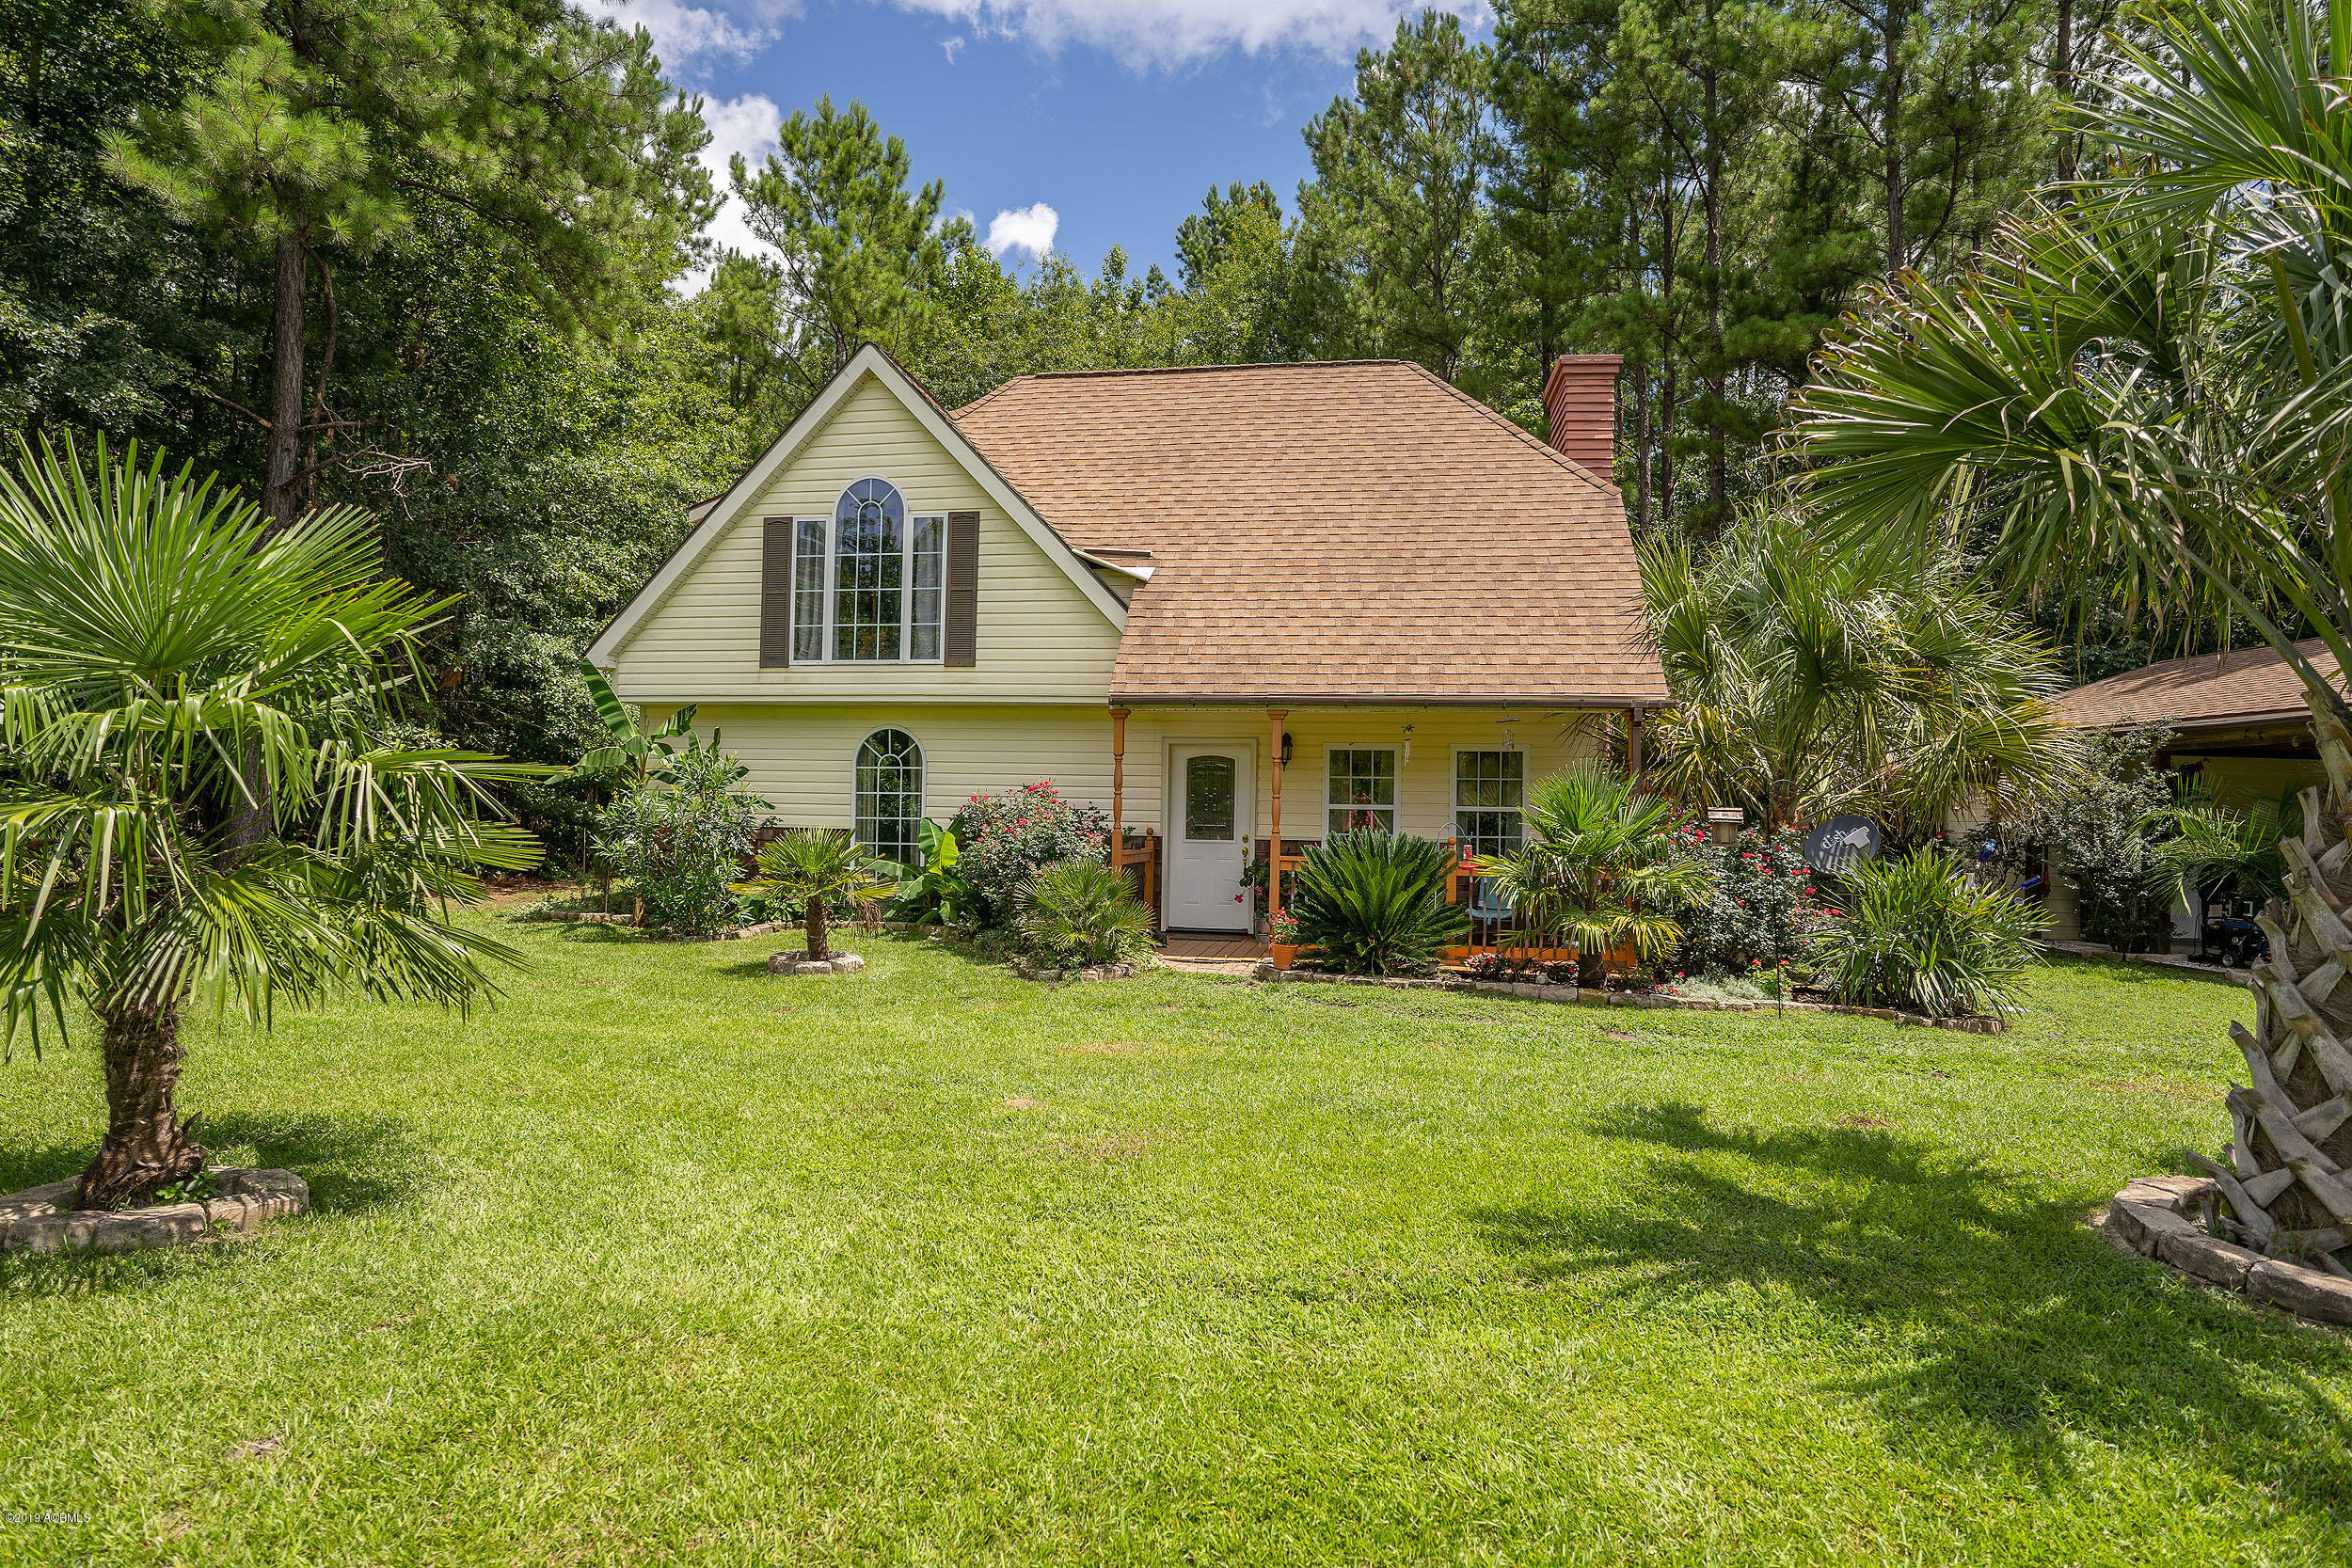 Photo of 700 Ridgecut Road, Early Branch, SC 29916